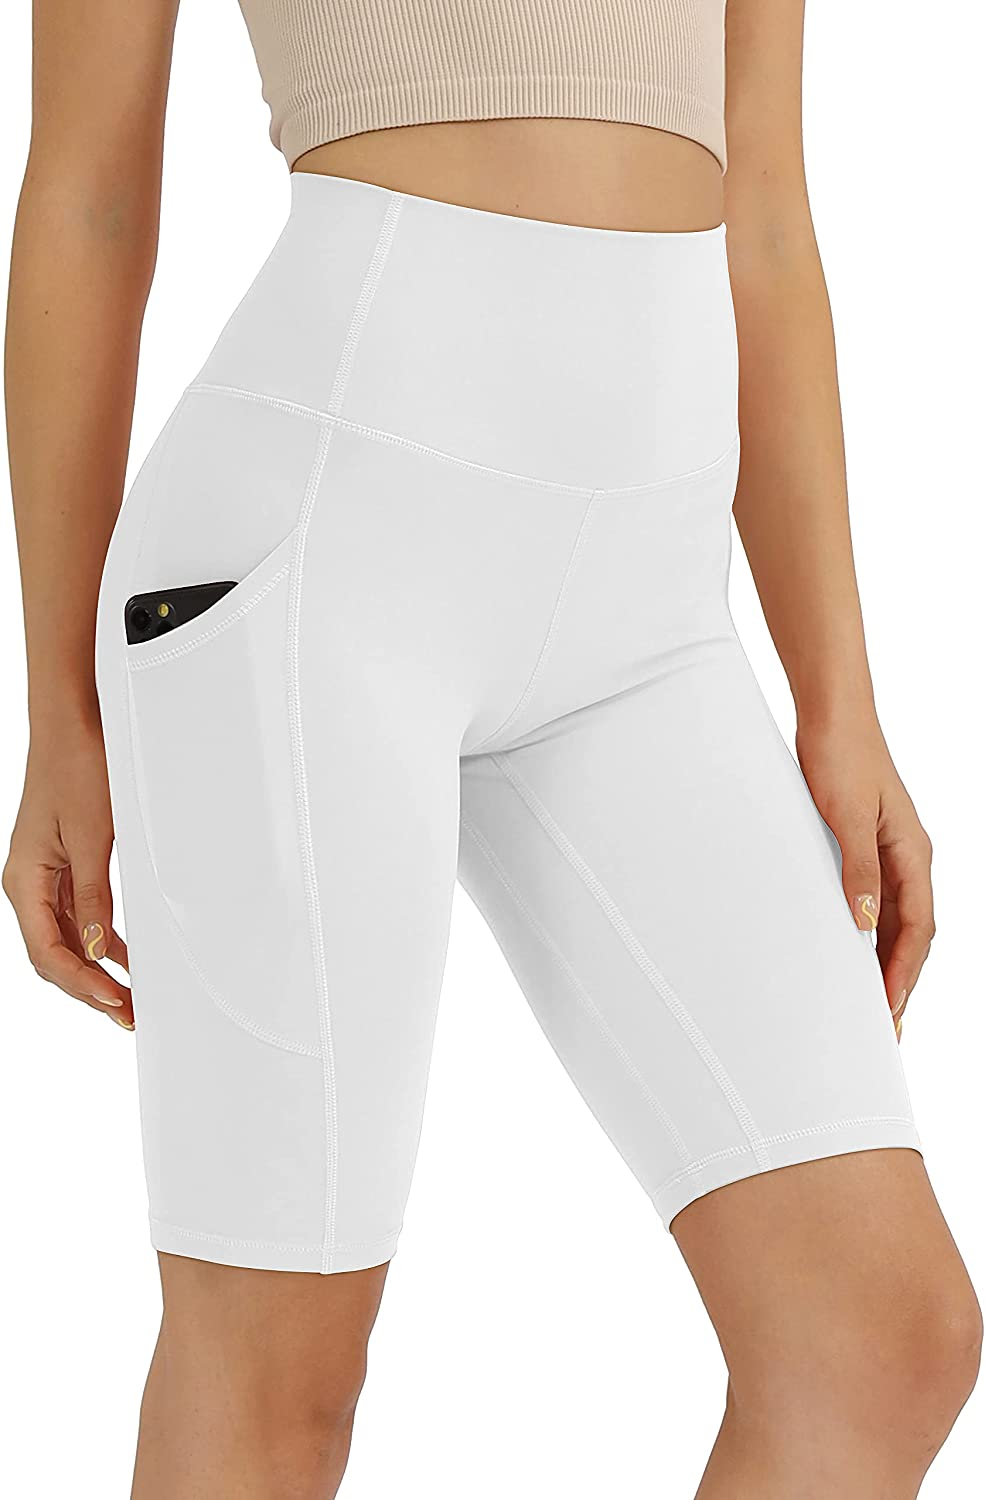 Direct sale of manufacturer ODODOS Women's High Waisted Biker 5†Out Shorts Pockets Sale price with